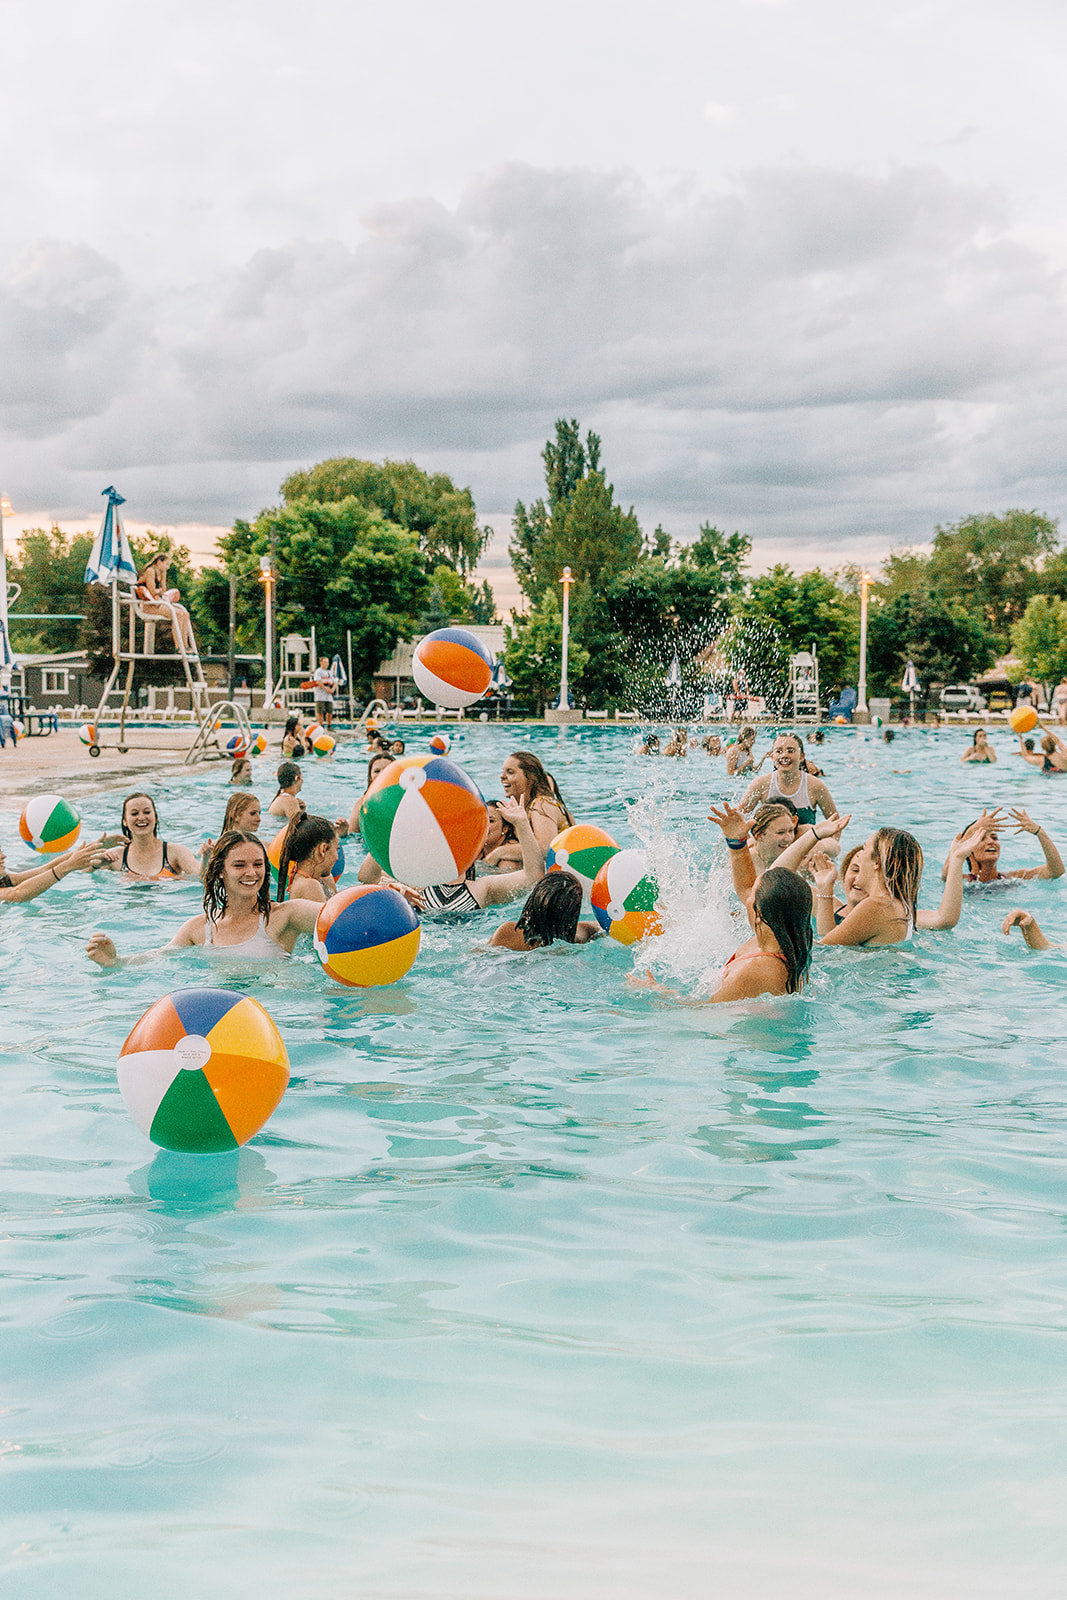 commercial photographer at epic pool party inspo by nani swimwear in logan utah professional event pictures cache valley bella alder photography #bellaalderphoto #poolparty #professionalevent #eventinspo #poolpartyinspo #commercialevent #commercialphotography